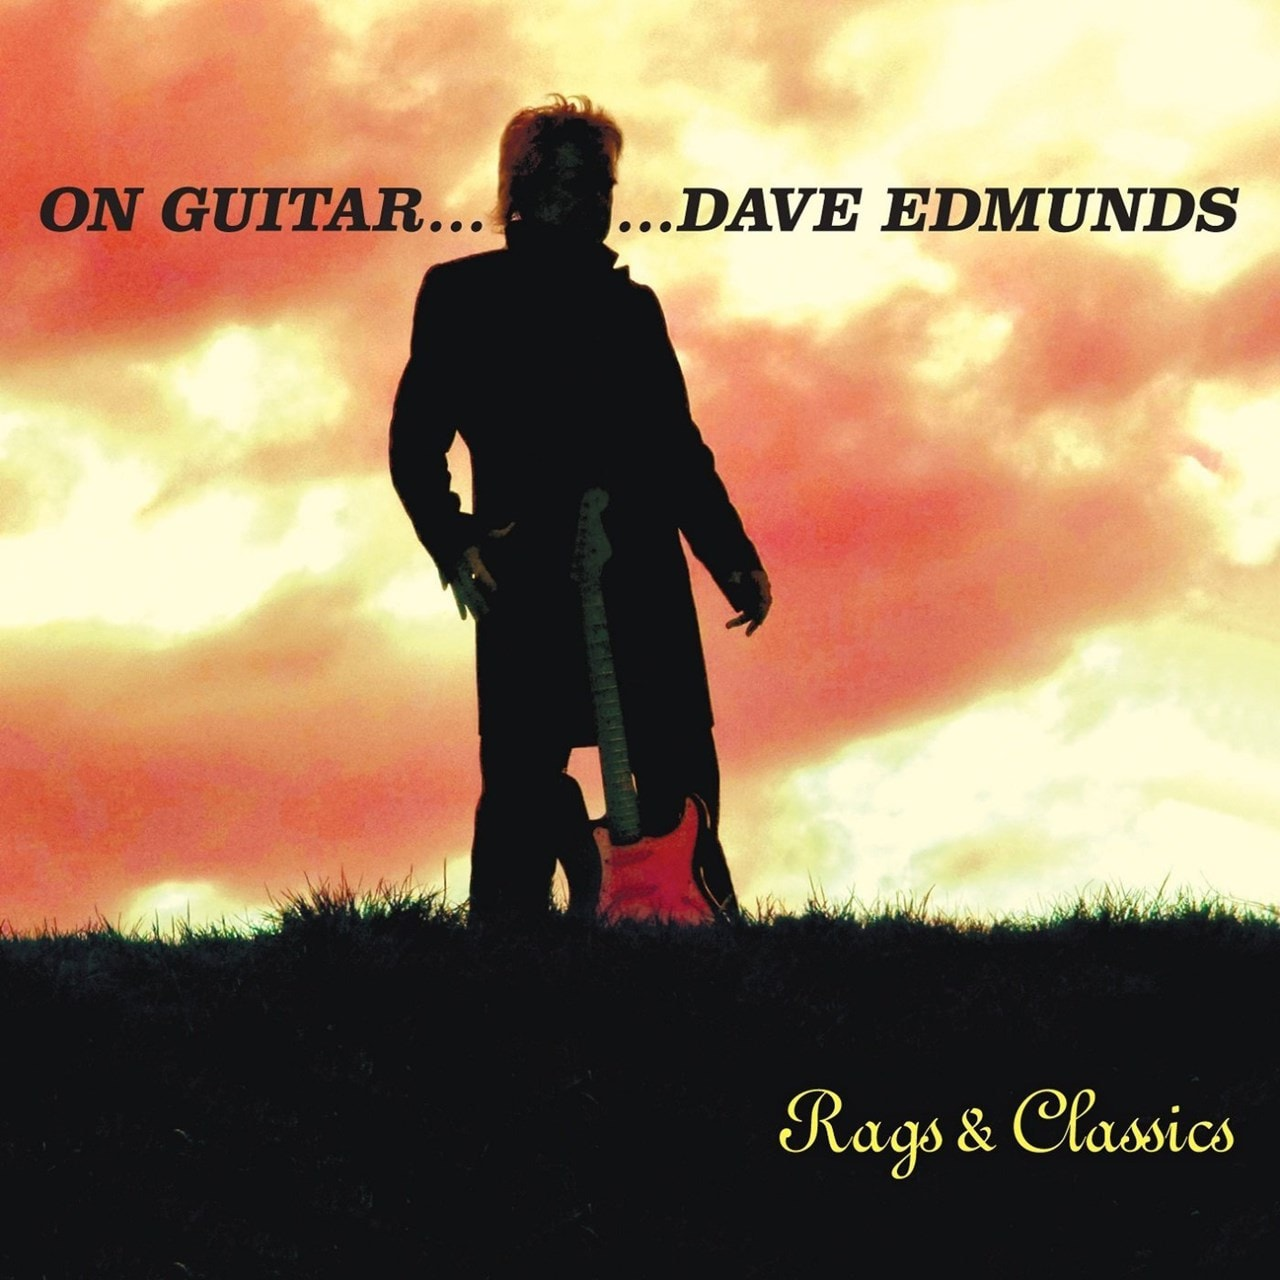 On Guitar... Dave Edmunds Rags and Classics - 1